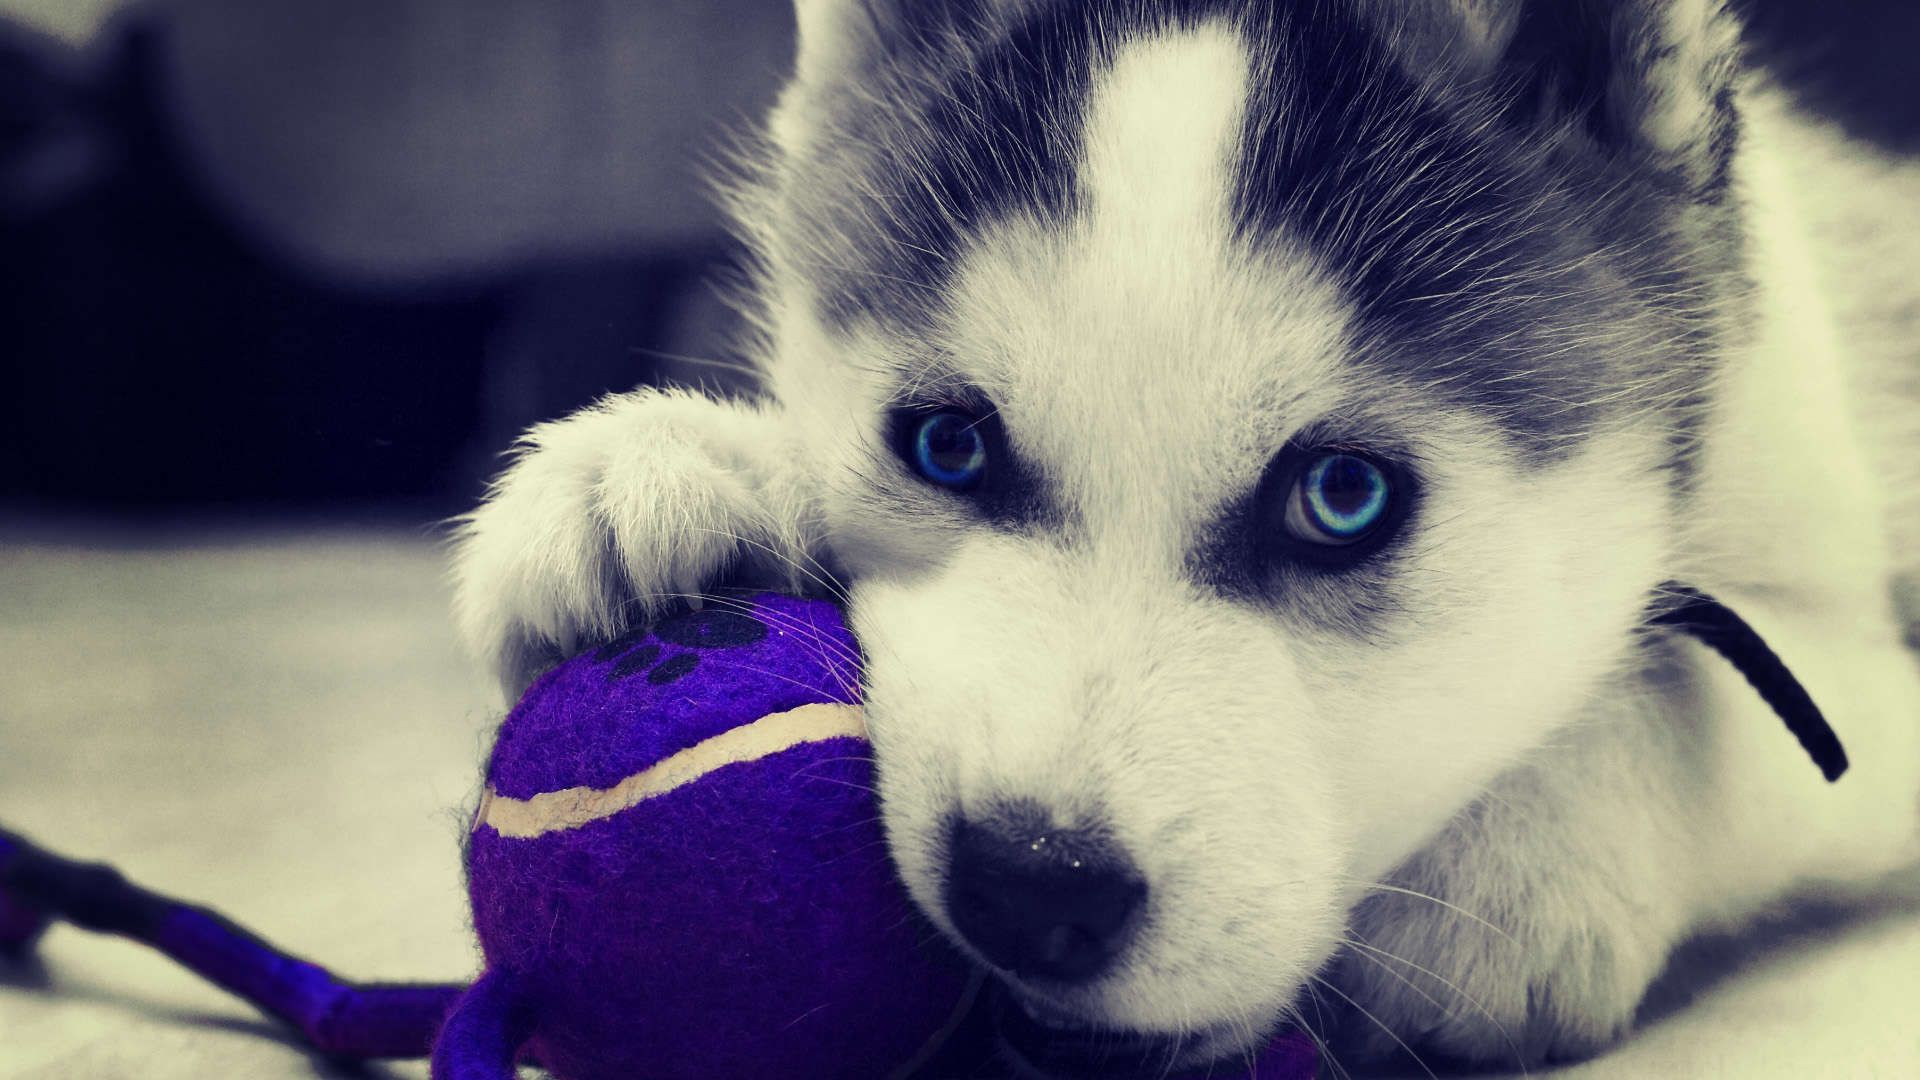 Siberian Husky Puppies Wallpaper Hd 1080p Cute Husky Puppies